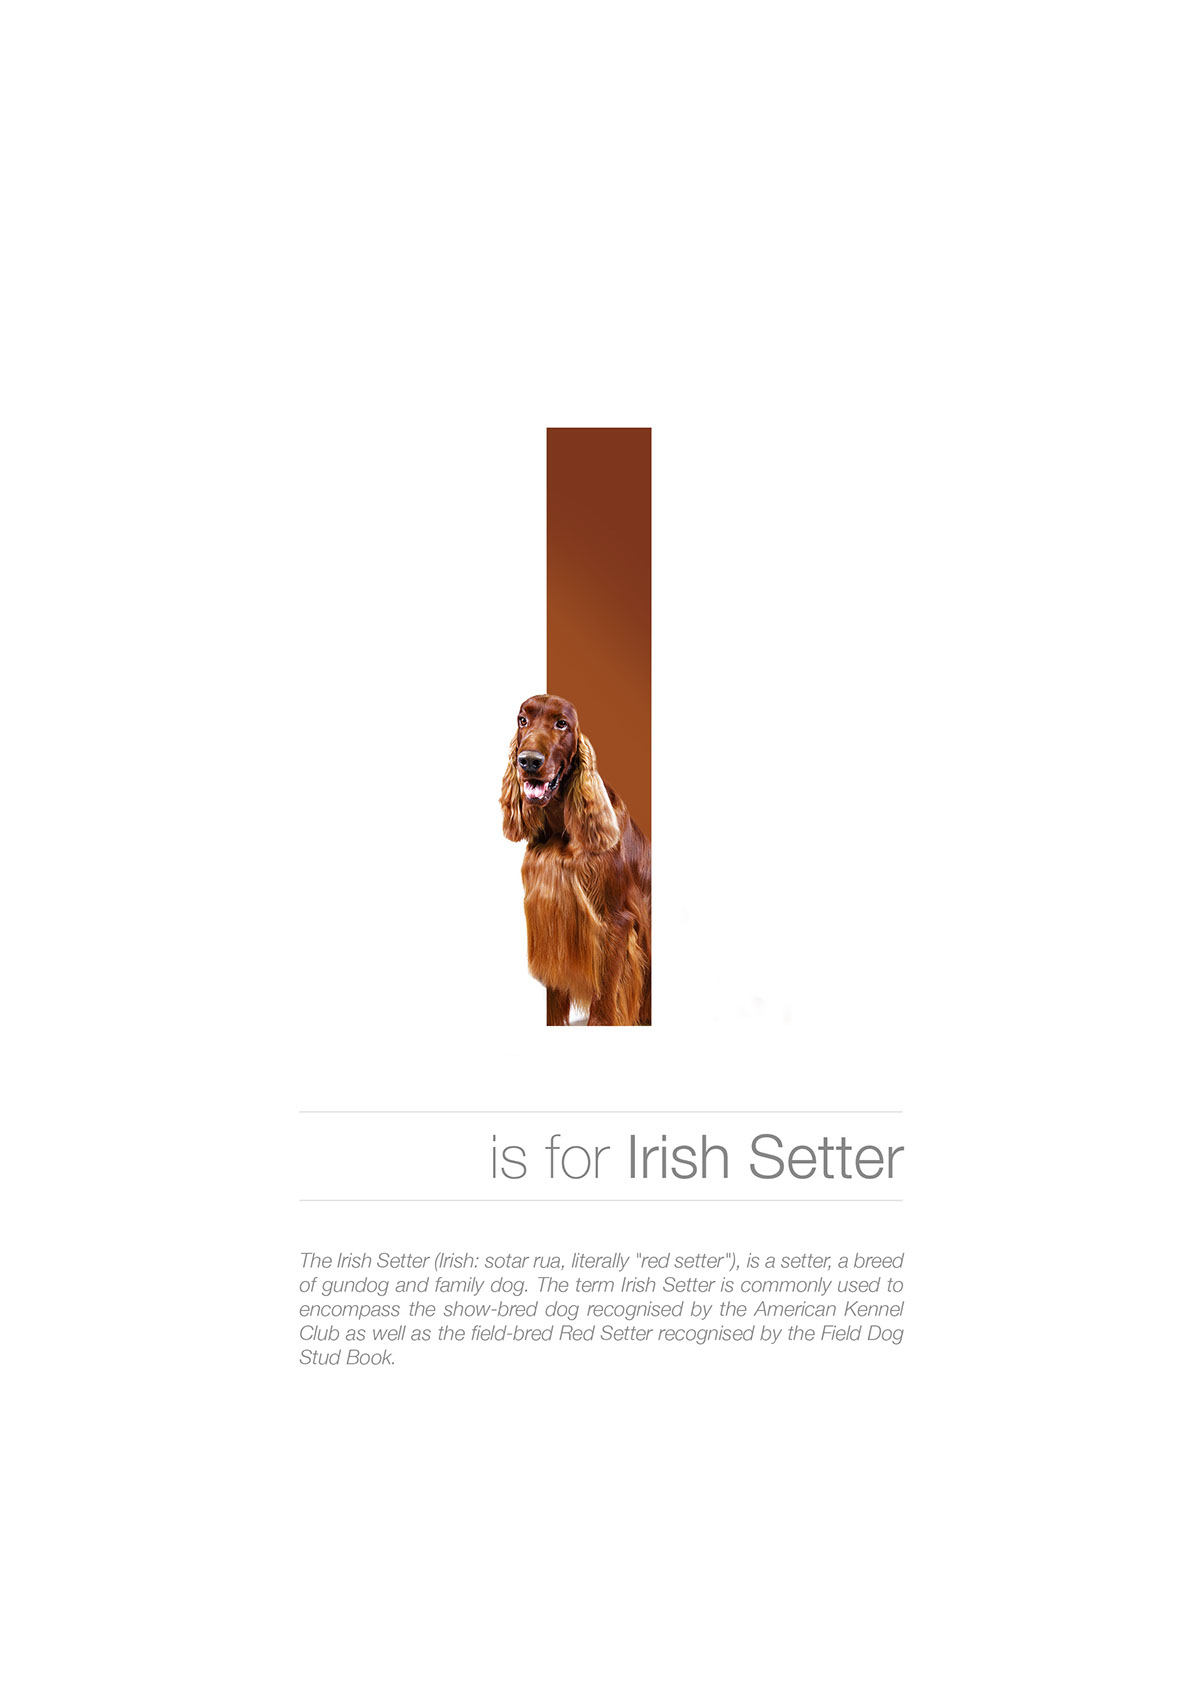 dog posters Breeds alphabet learning letters graphicdesign type